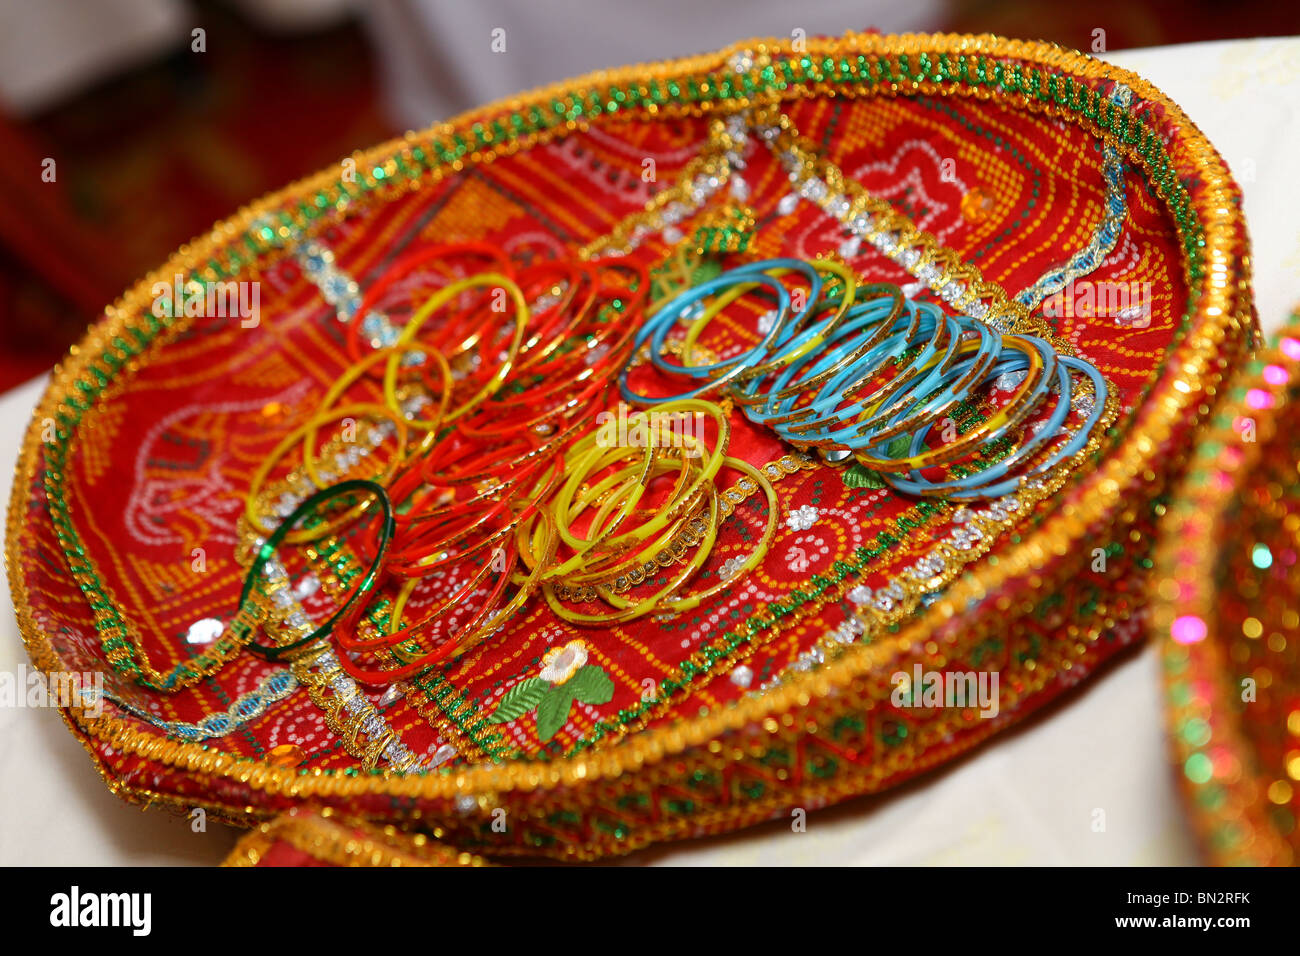 bangles in a basket - Stock Image